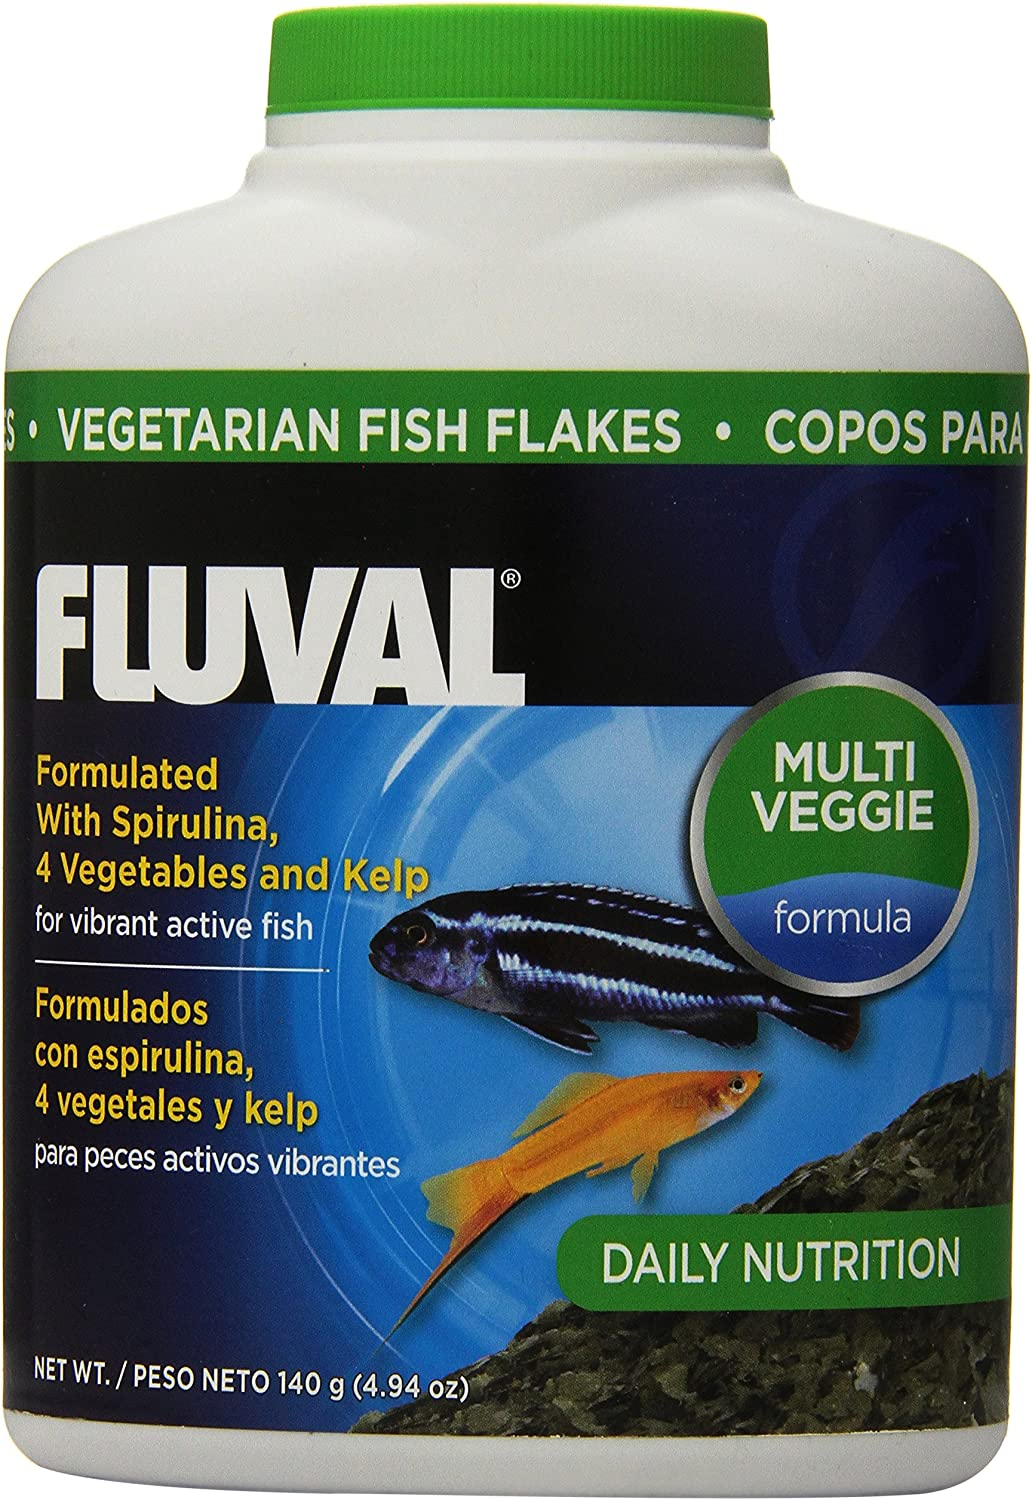 Fluval Hagen 35gm Vegetarian Flakes Fish Food